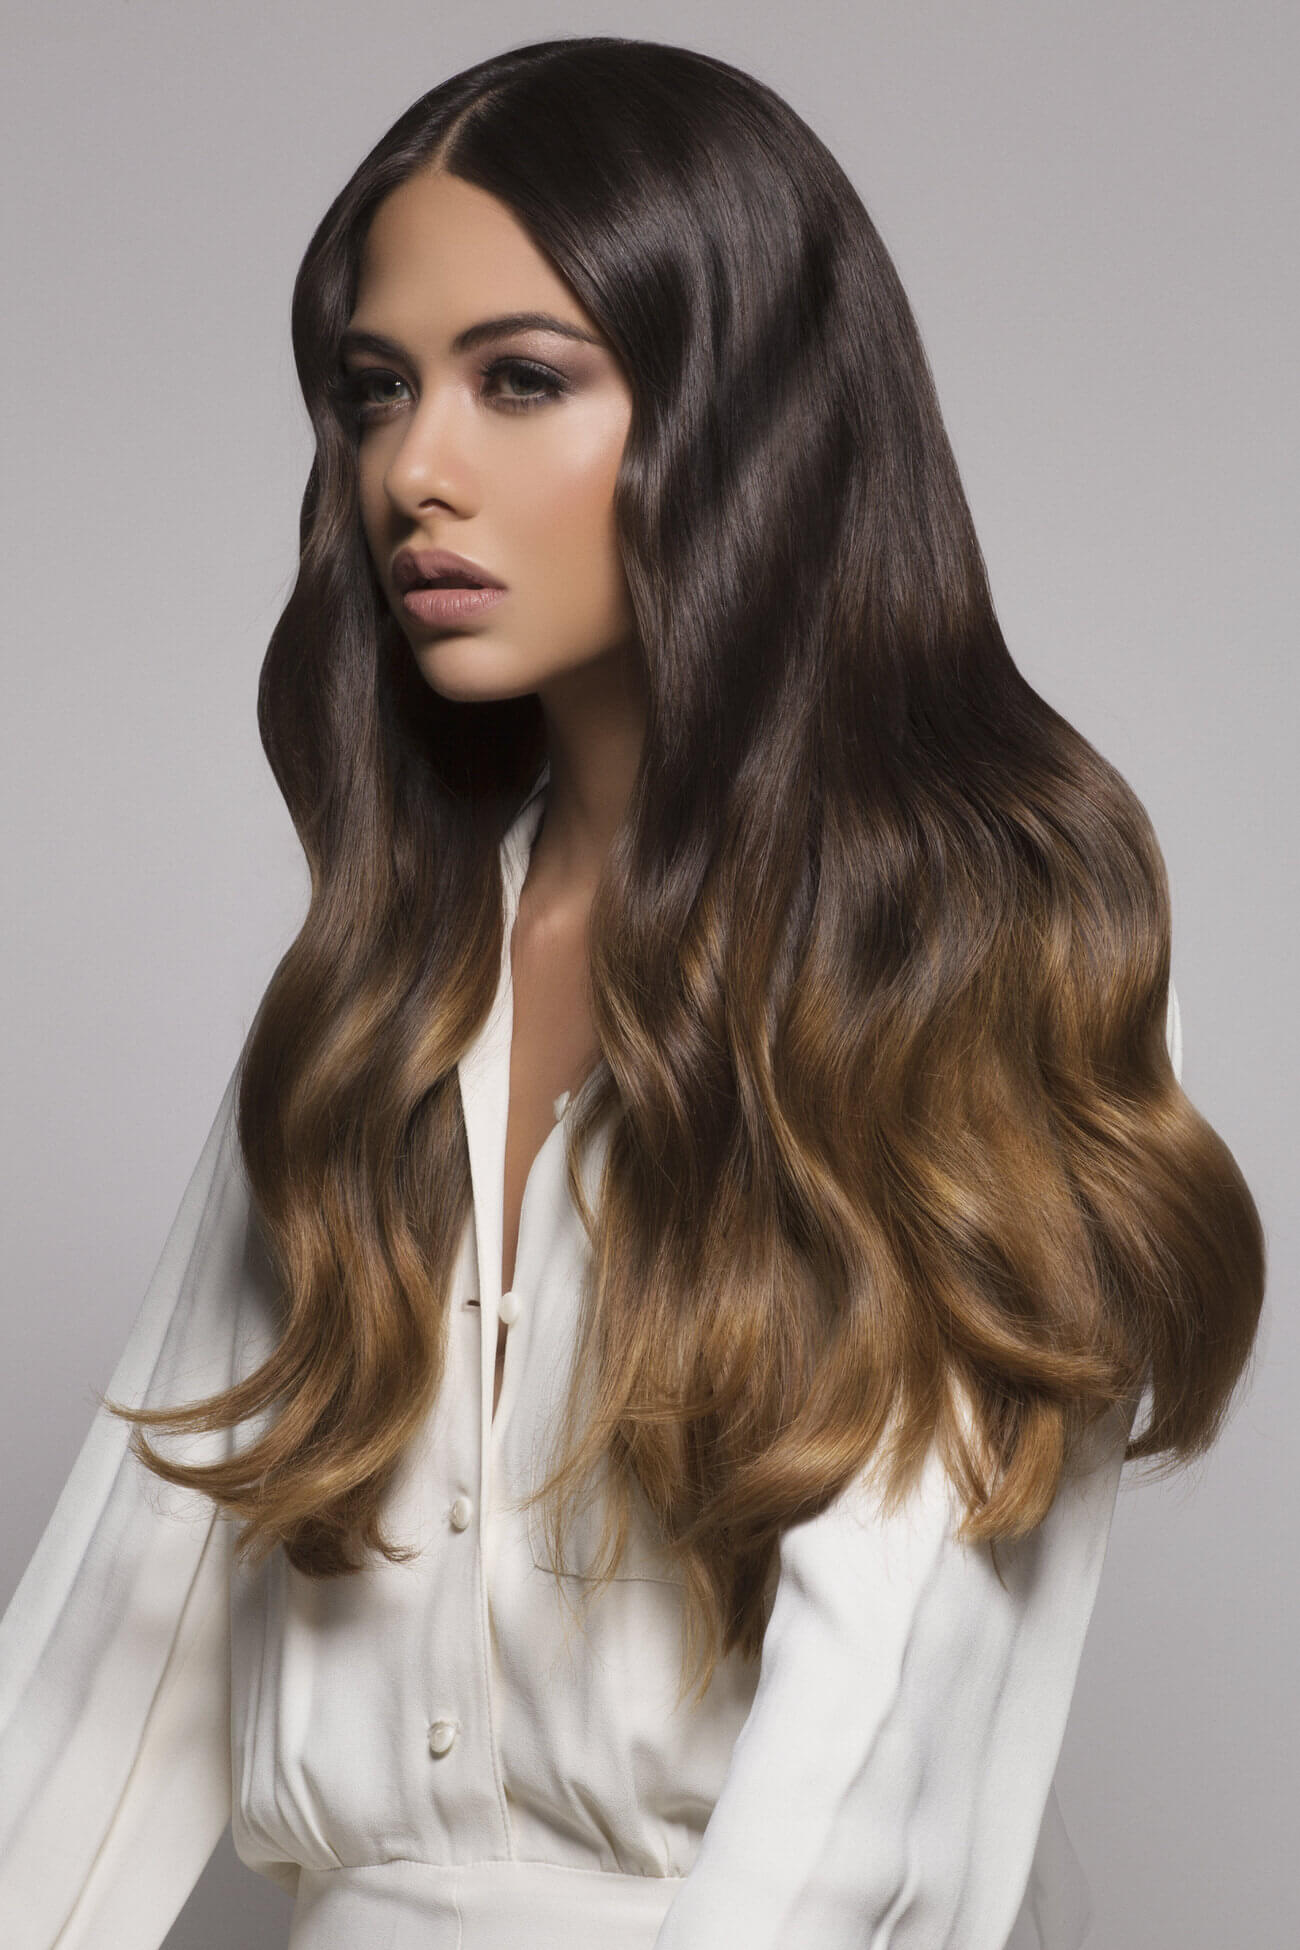 Hair Extensions In Limoz Logli Hair Salon Chelsea - Hair Styling